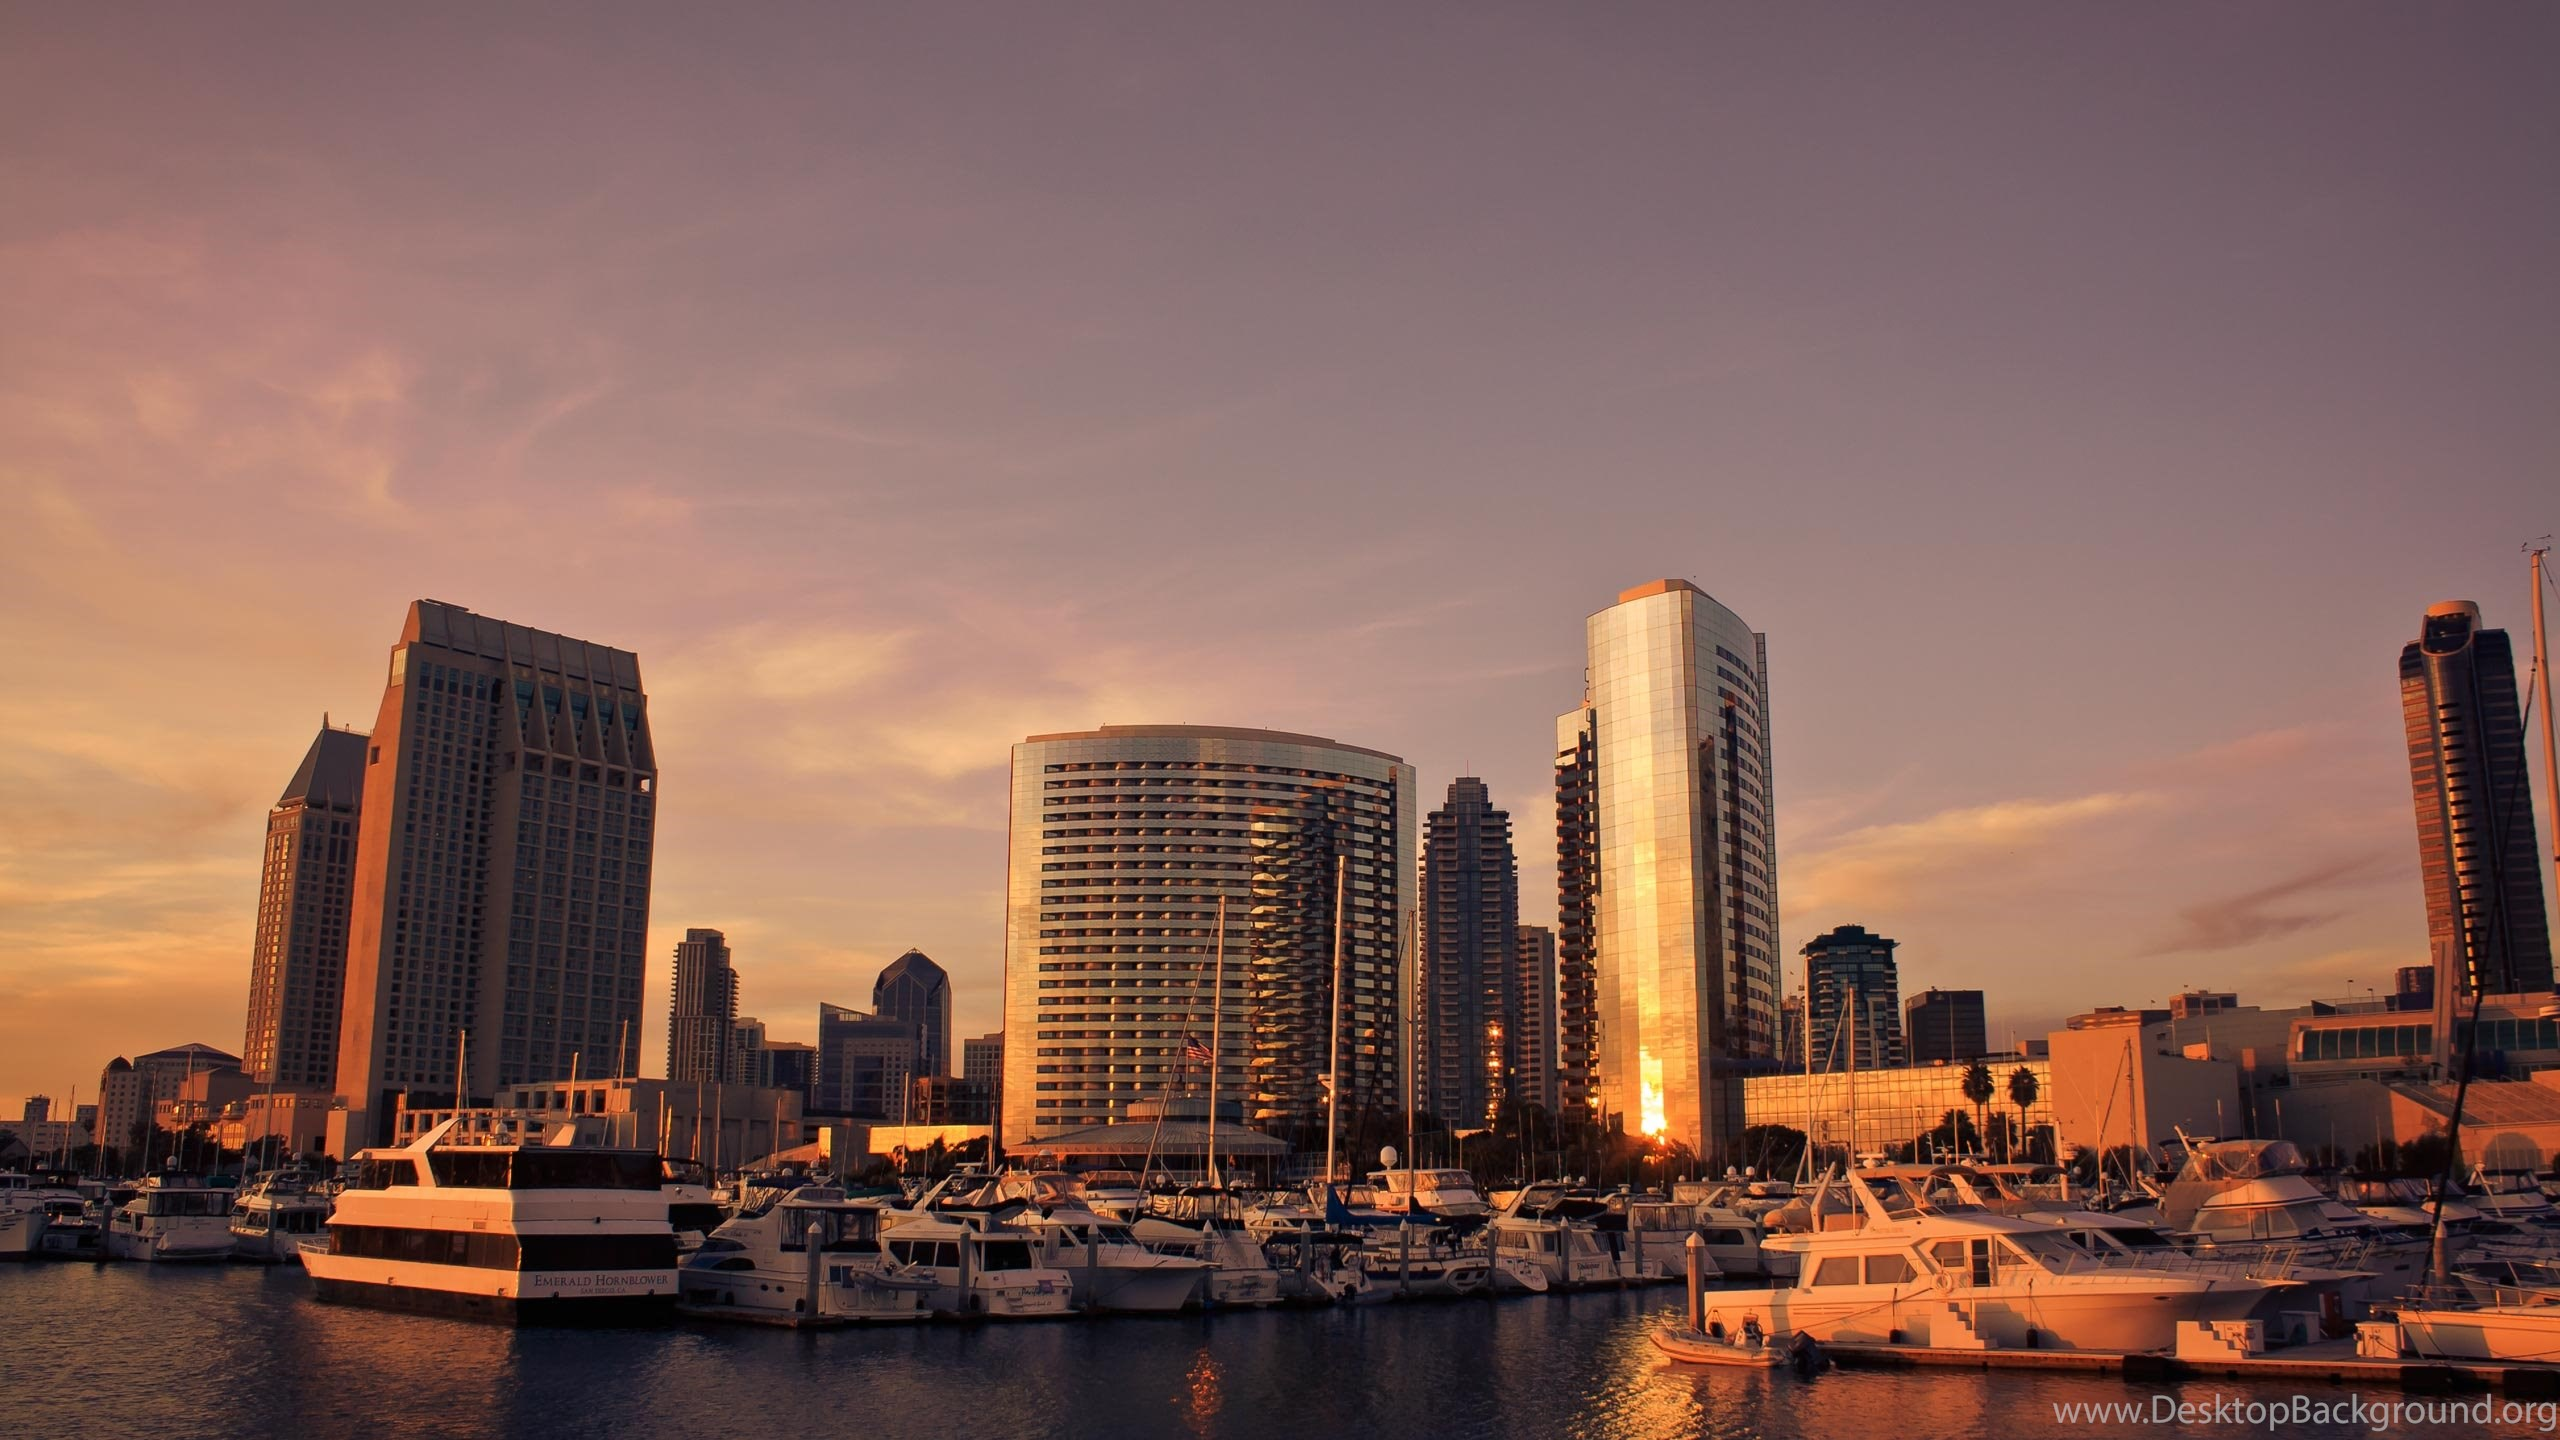 New San Diego Wallpapers High Definition Desktop Background